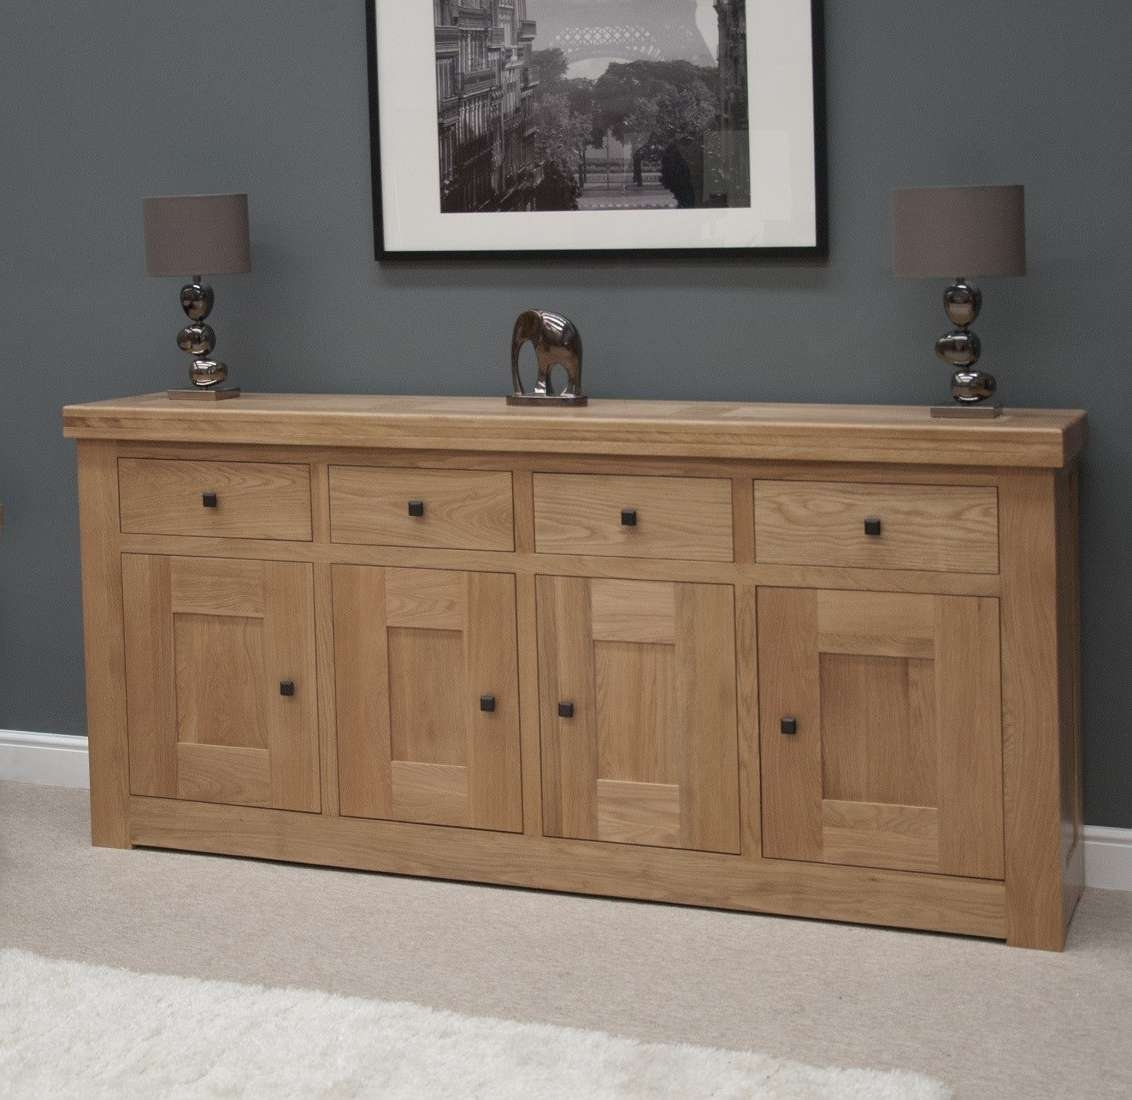 French Bordeaux Oak Extra Large 4 Door Sideboard | Oak Furniture Uk With Regard To Hallway Sideboards (View 1 of 20)